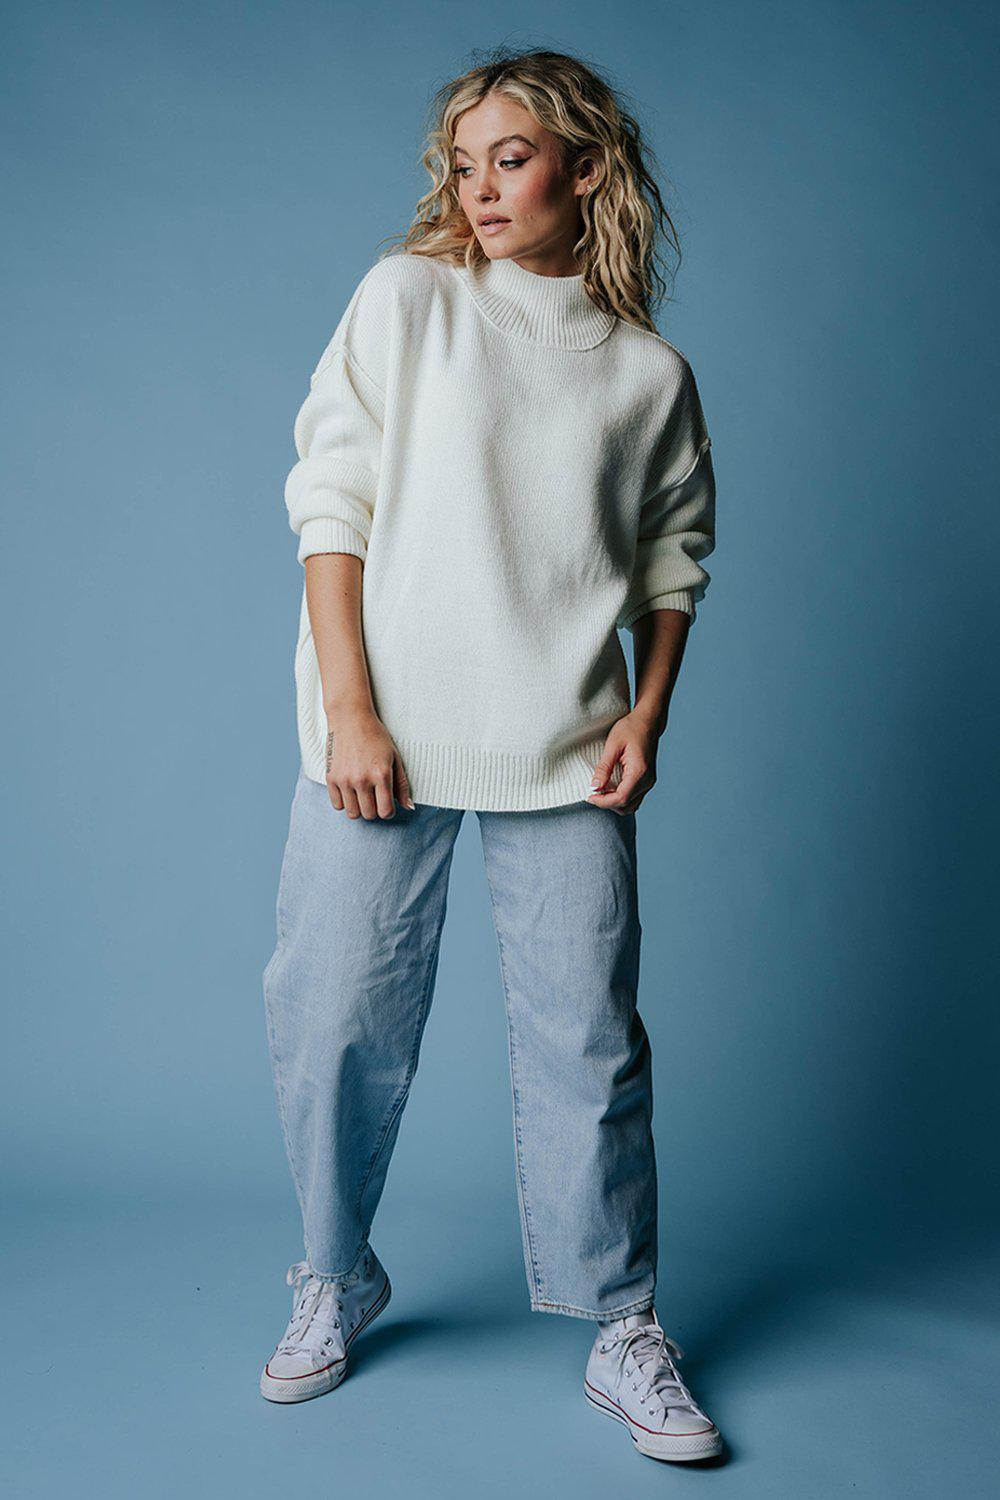 best_seller, One Man Show Pullover in Ivory, Top, women's clothing, dresses, skirts, coats, jackets, shoes, boots, tops, tee shirts, jeans, free people, levi's, rollas, jumpsuits, bottoms, tops, sweaters, pullovers, pants, shorts, sweats,.